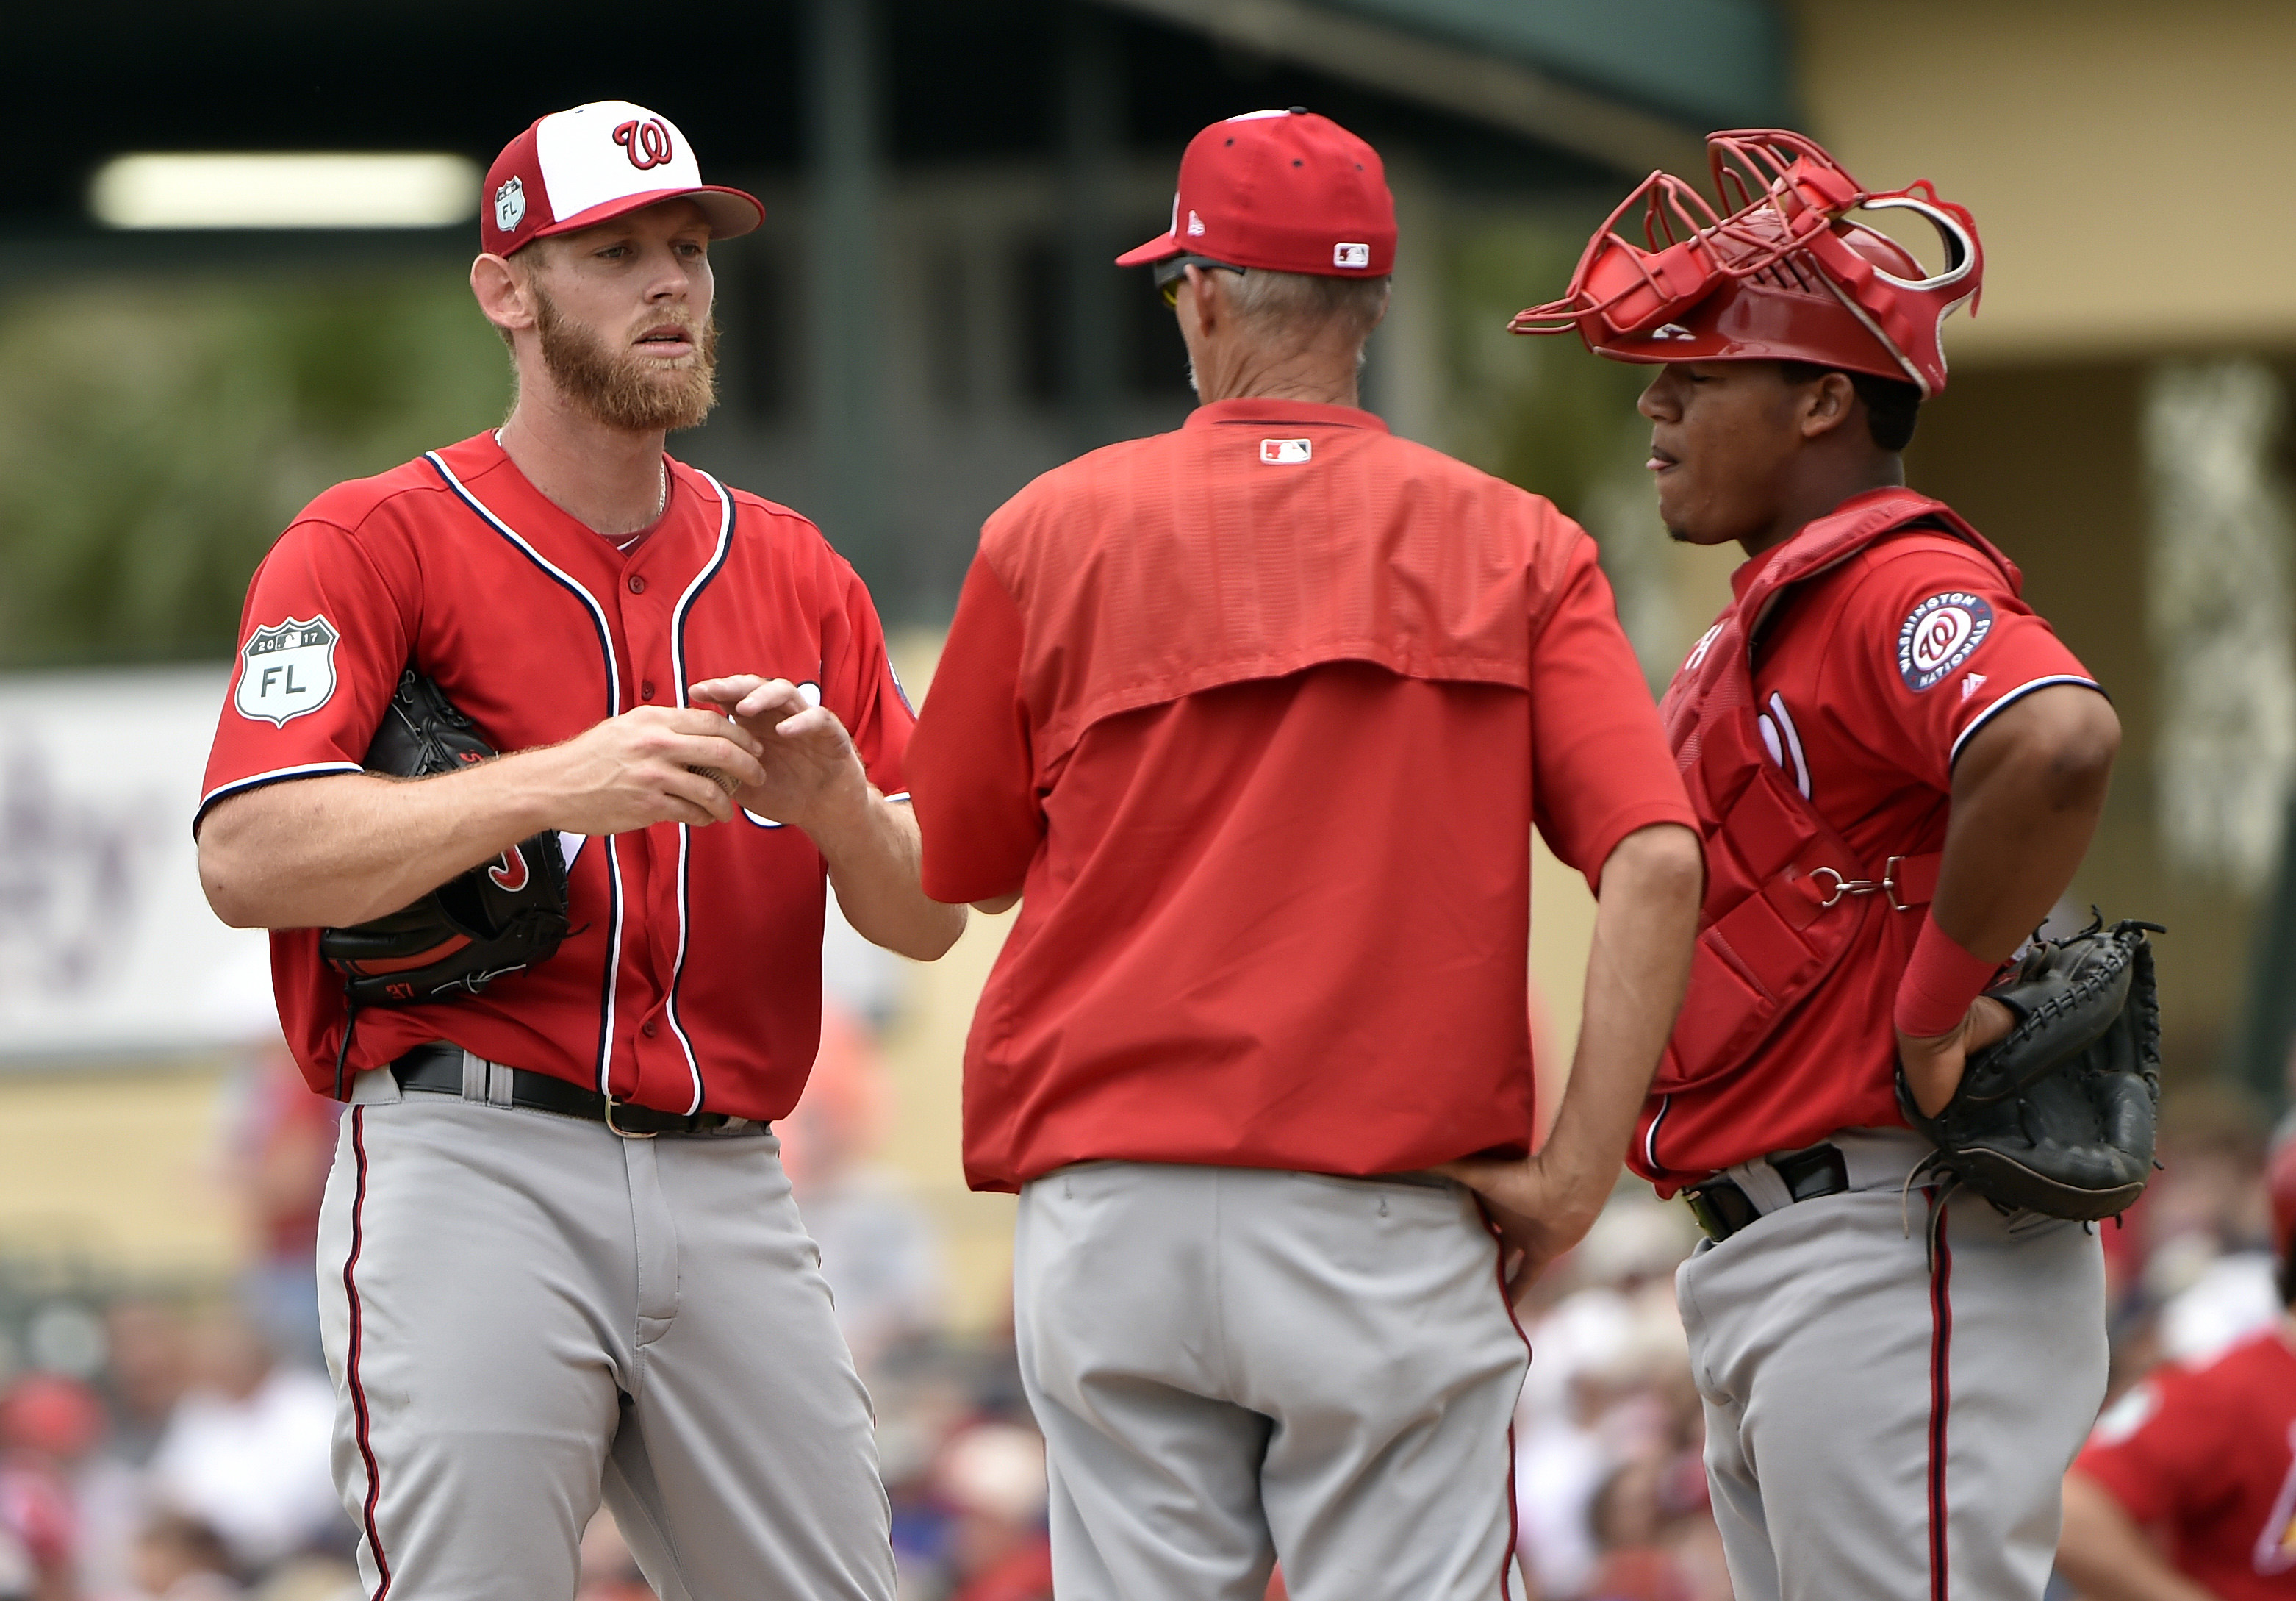 9925979-mlb-spring-training-washington-nationals-at-st.-louis-cardinals